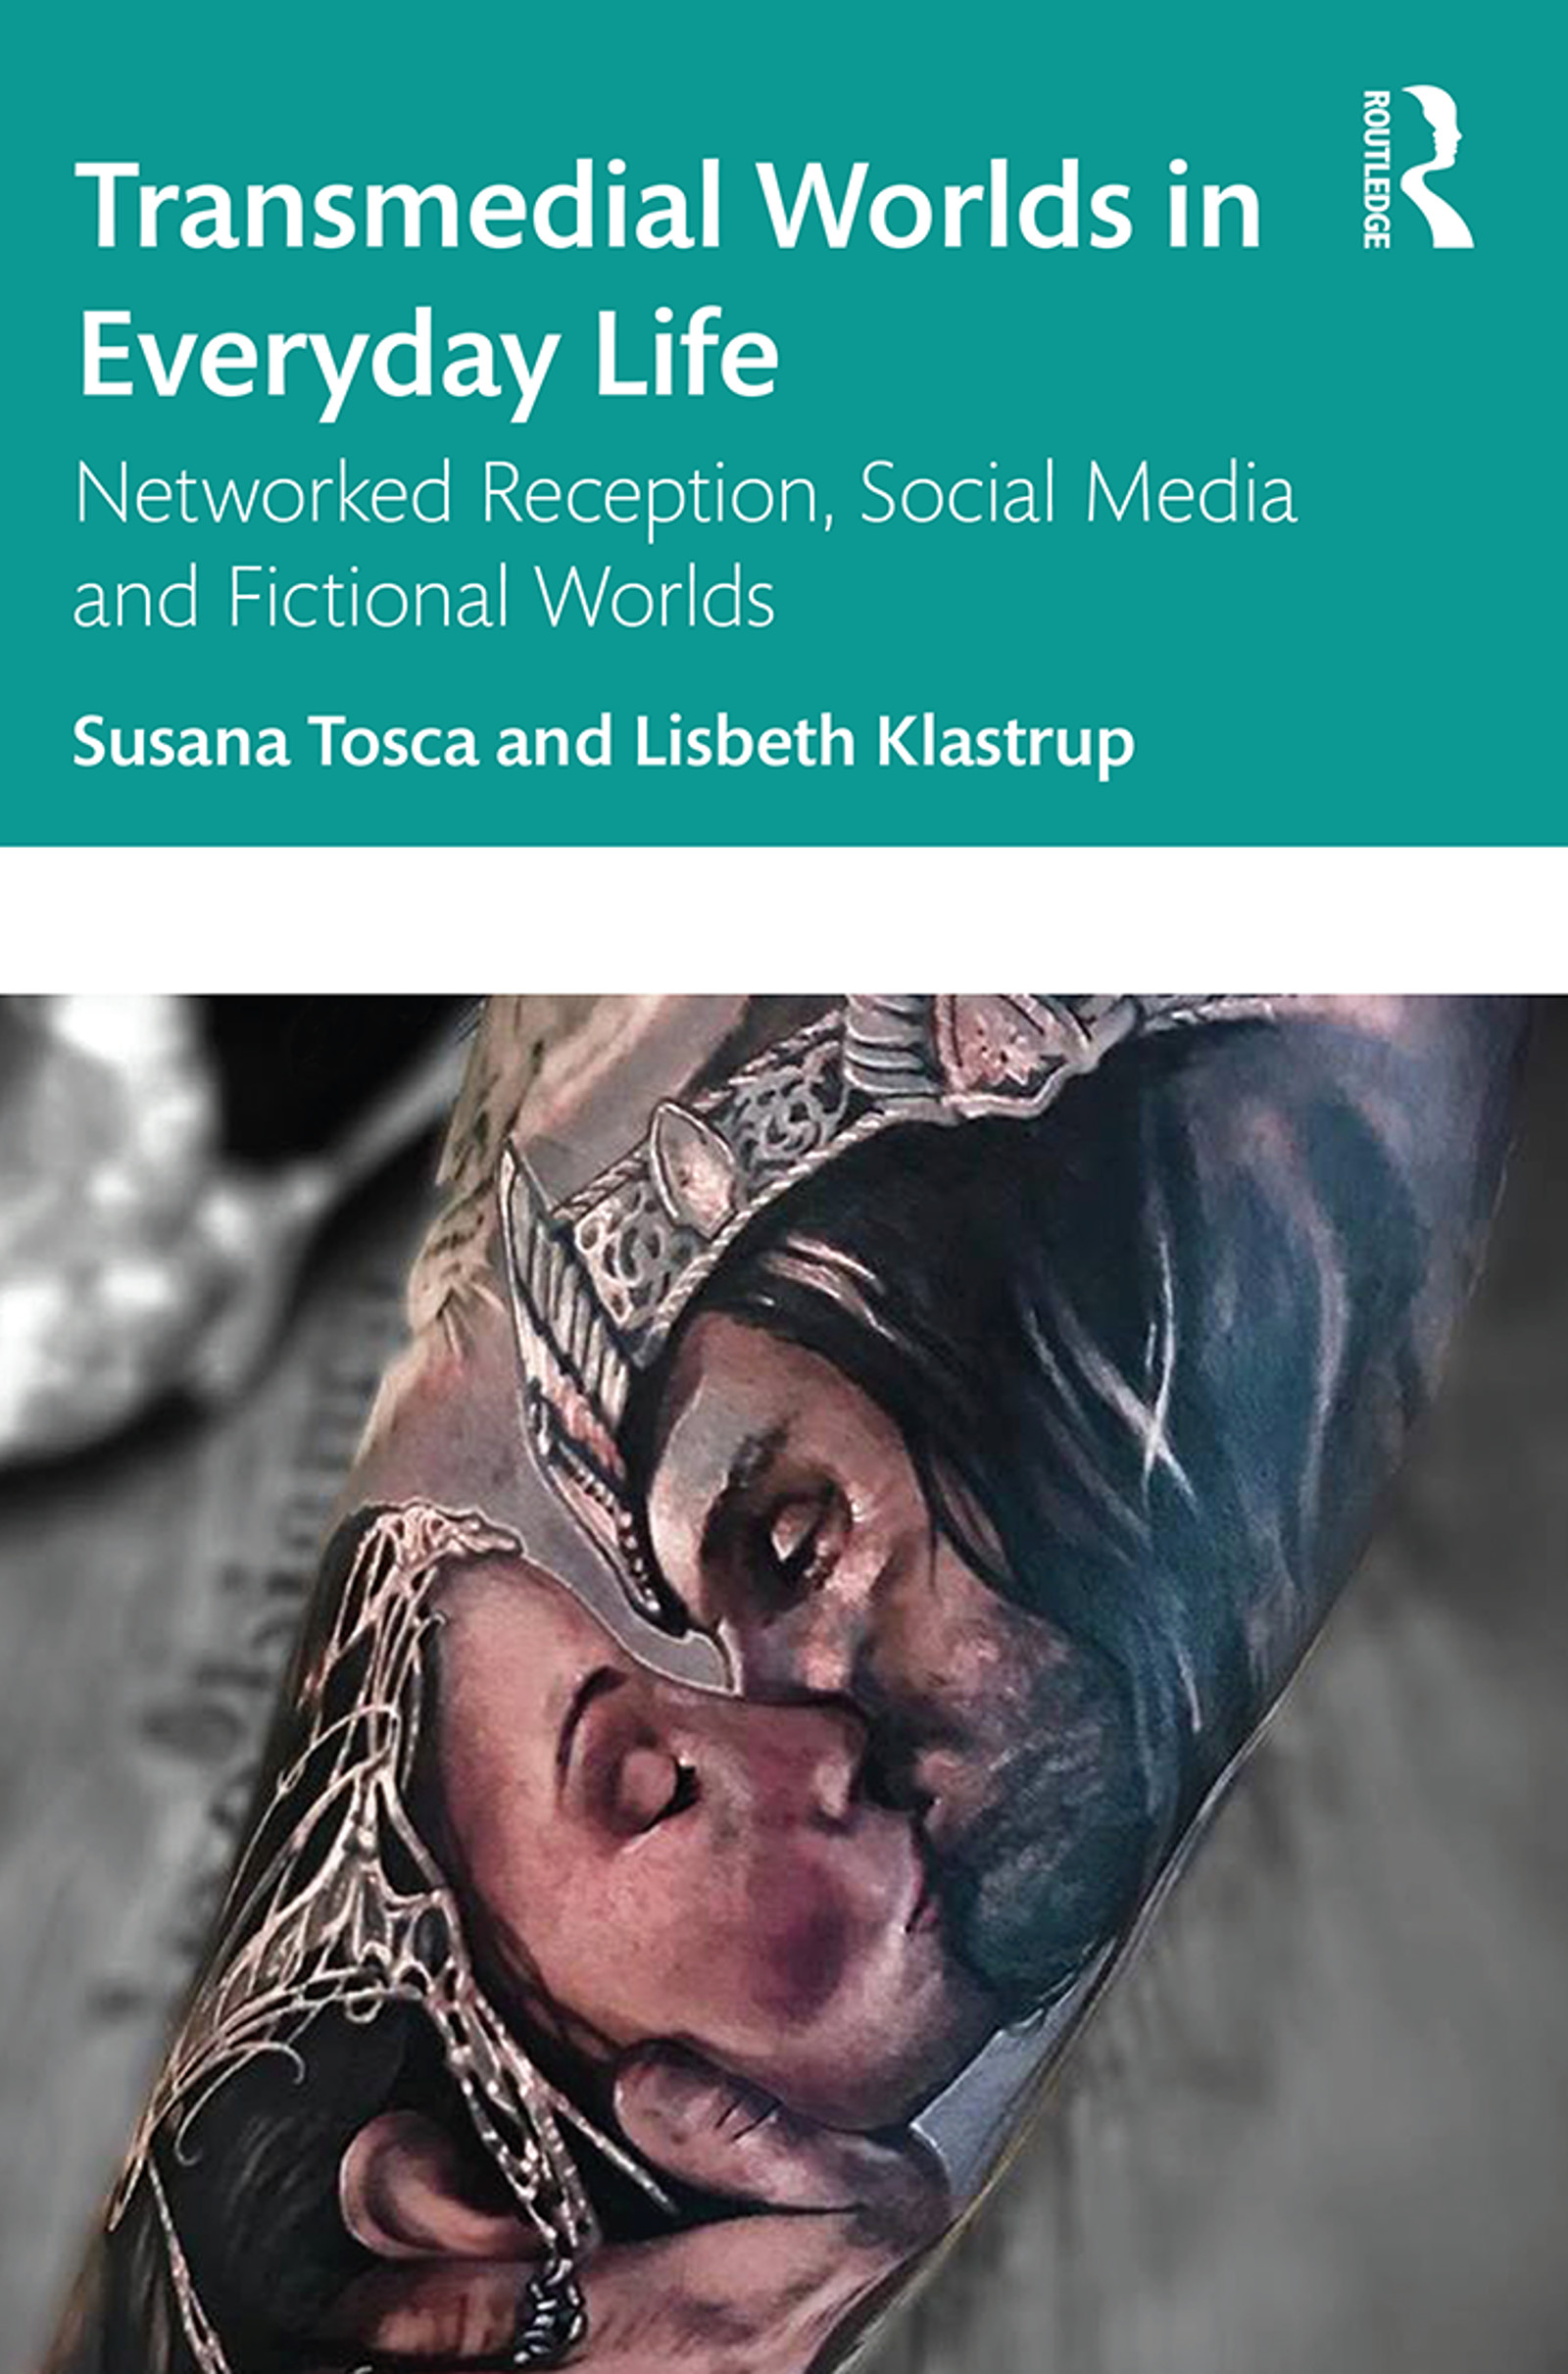 Transmedial Worlds in Everyday Life: Networked Reception, Social Media, and Fictional Worlds book cover